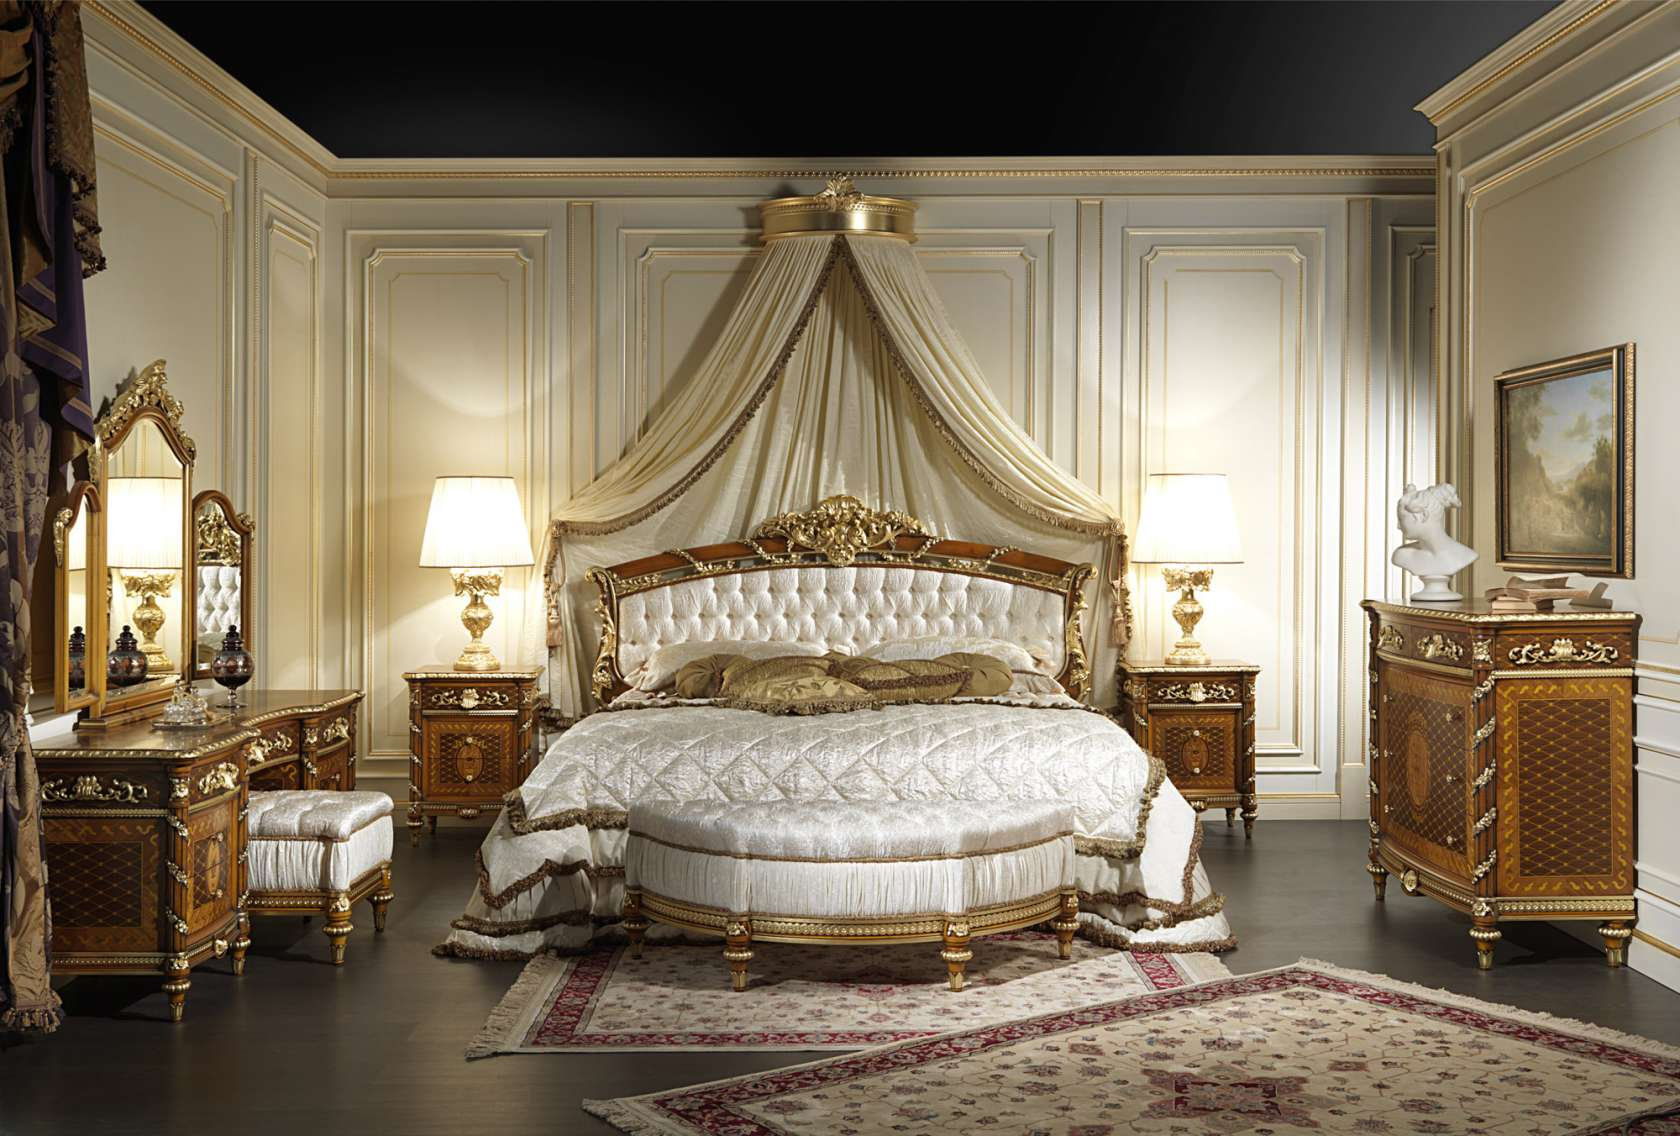 Louis xvi bedroom furniture - Furniture For Walnut Bedroom Of The Louis Xvi Collection Noce E Intarsi